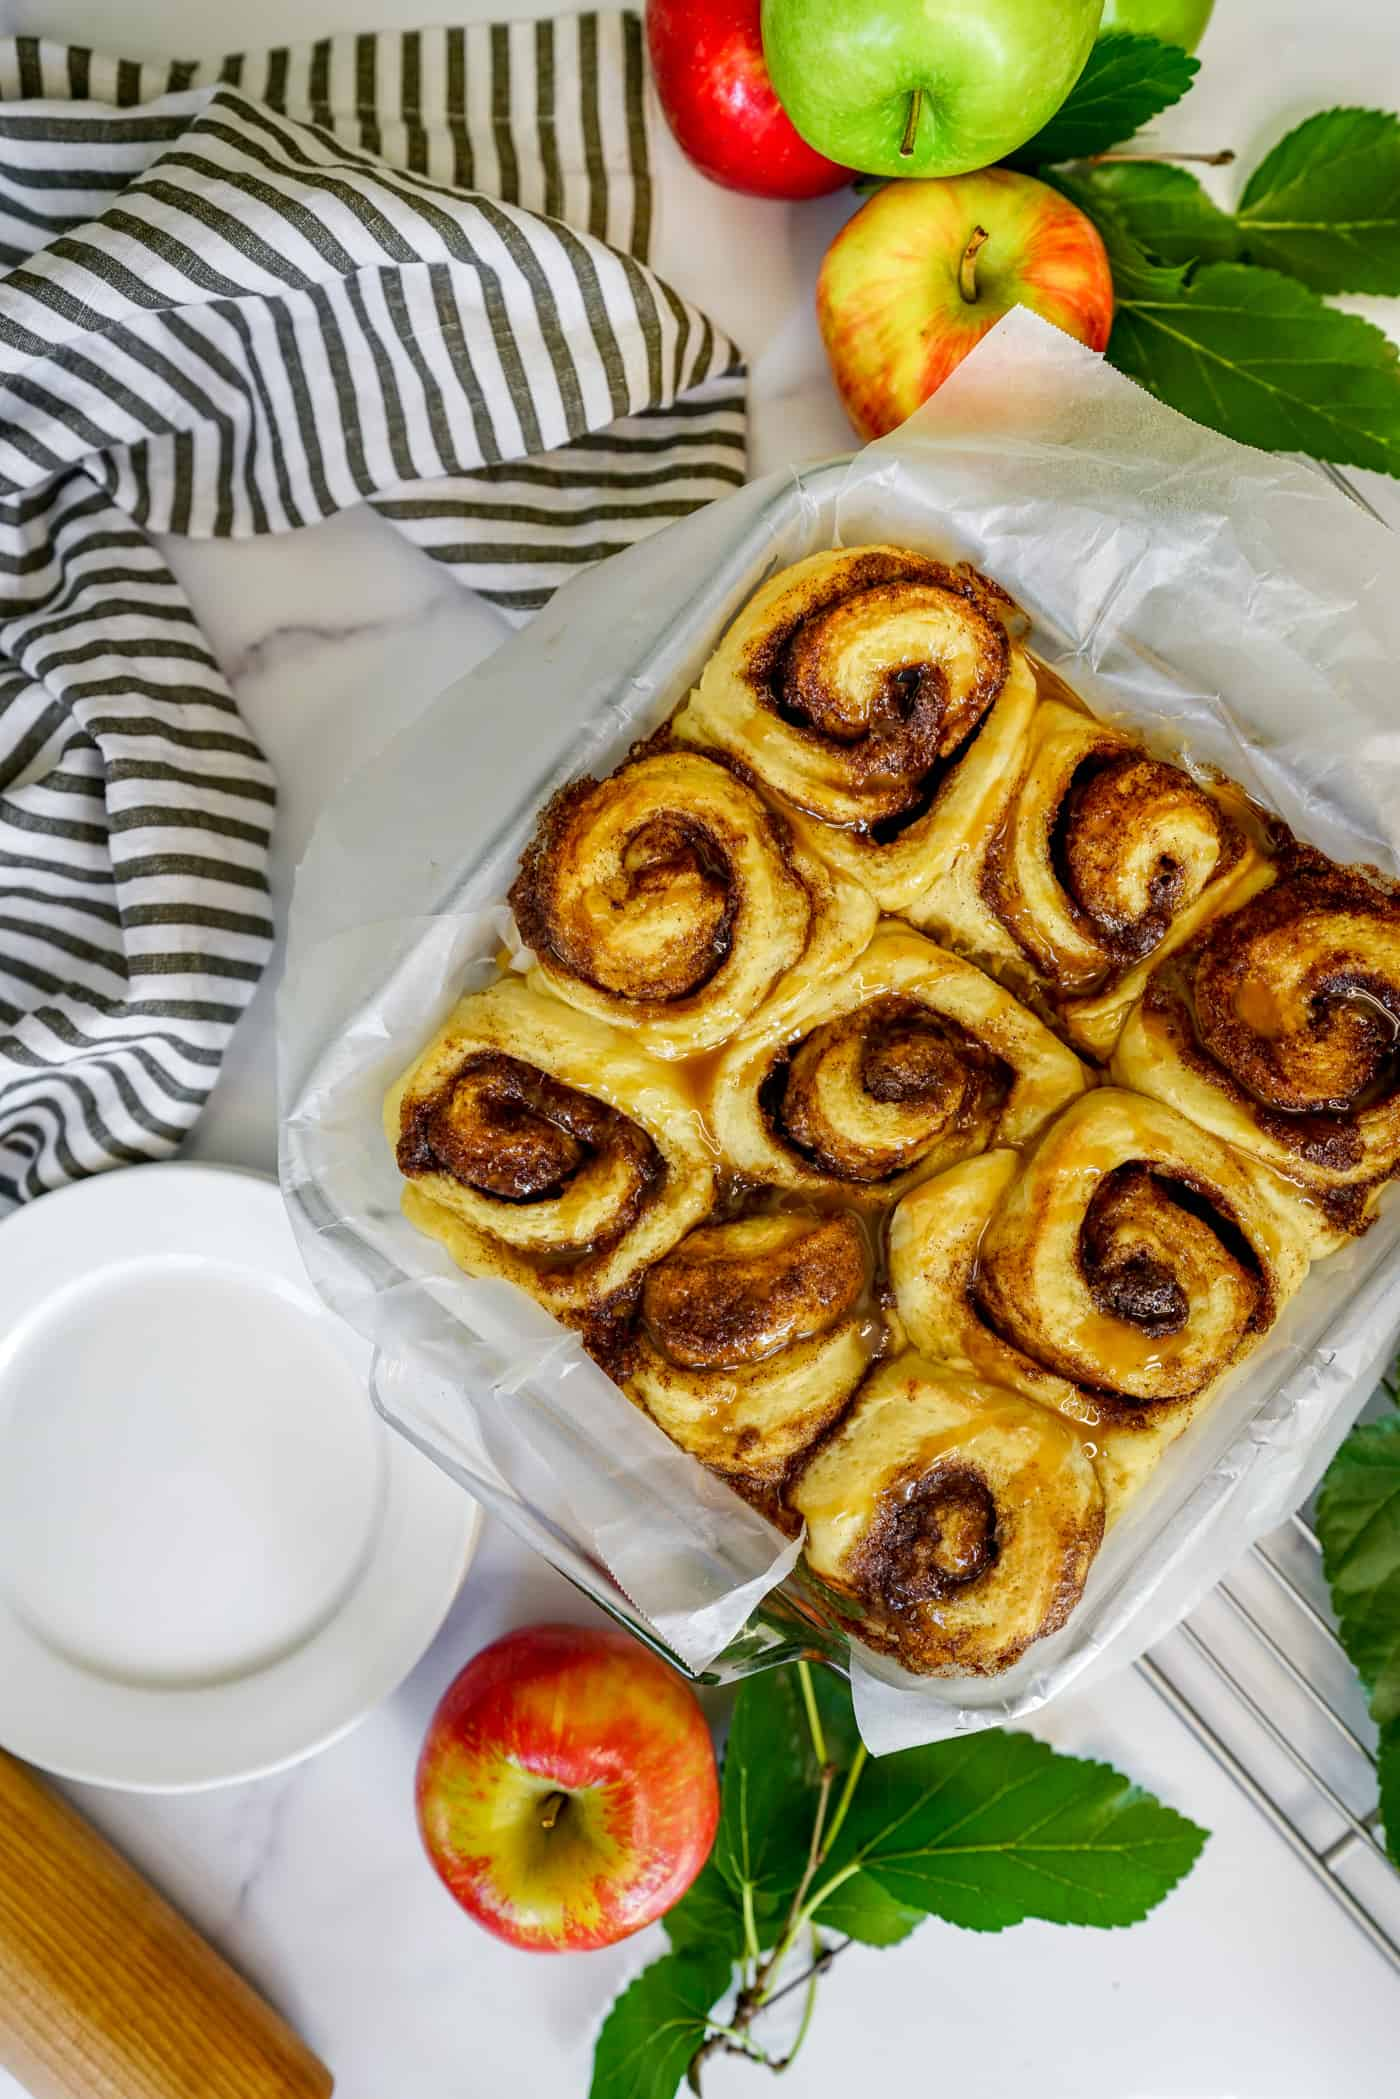 A 9x9 glass baking dish filled with baked caramel apple cinnamon rolls.